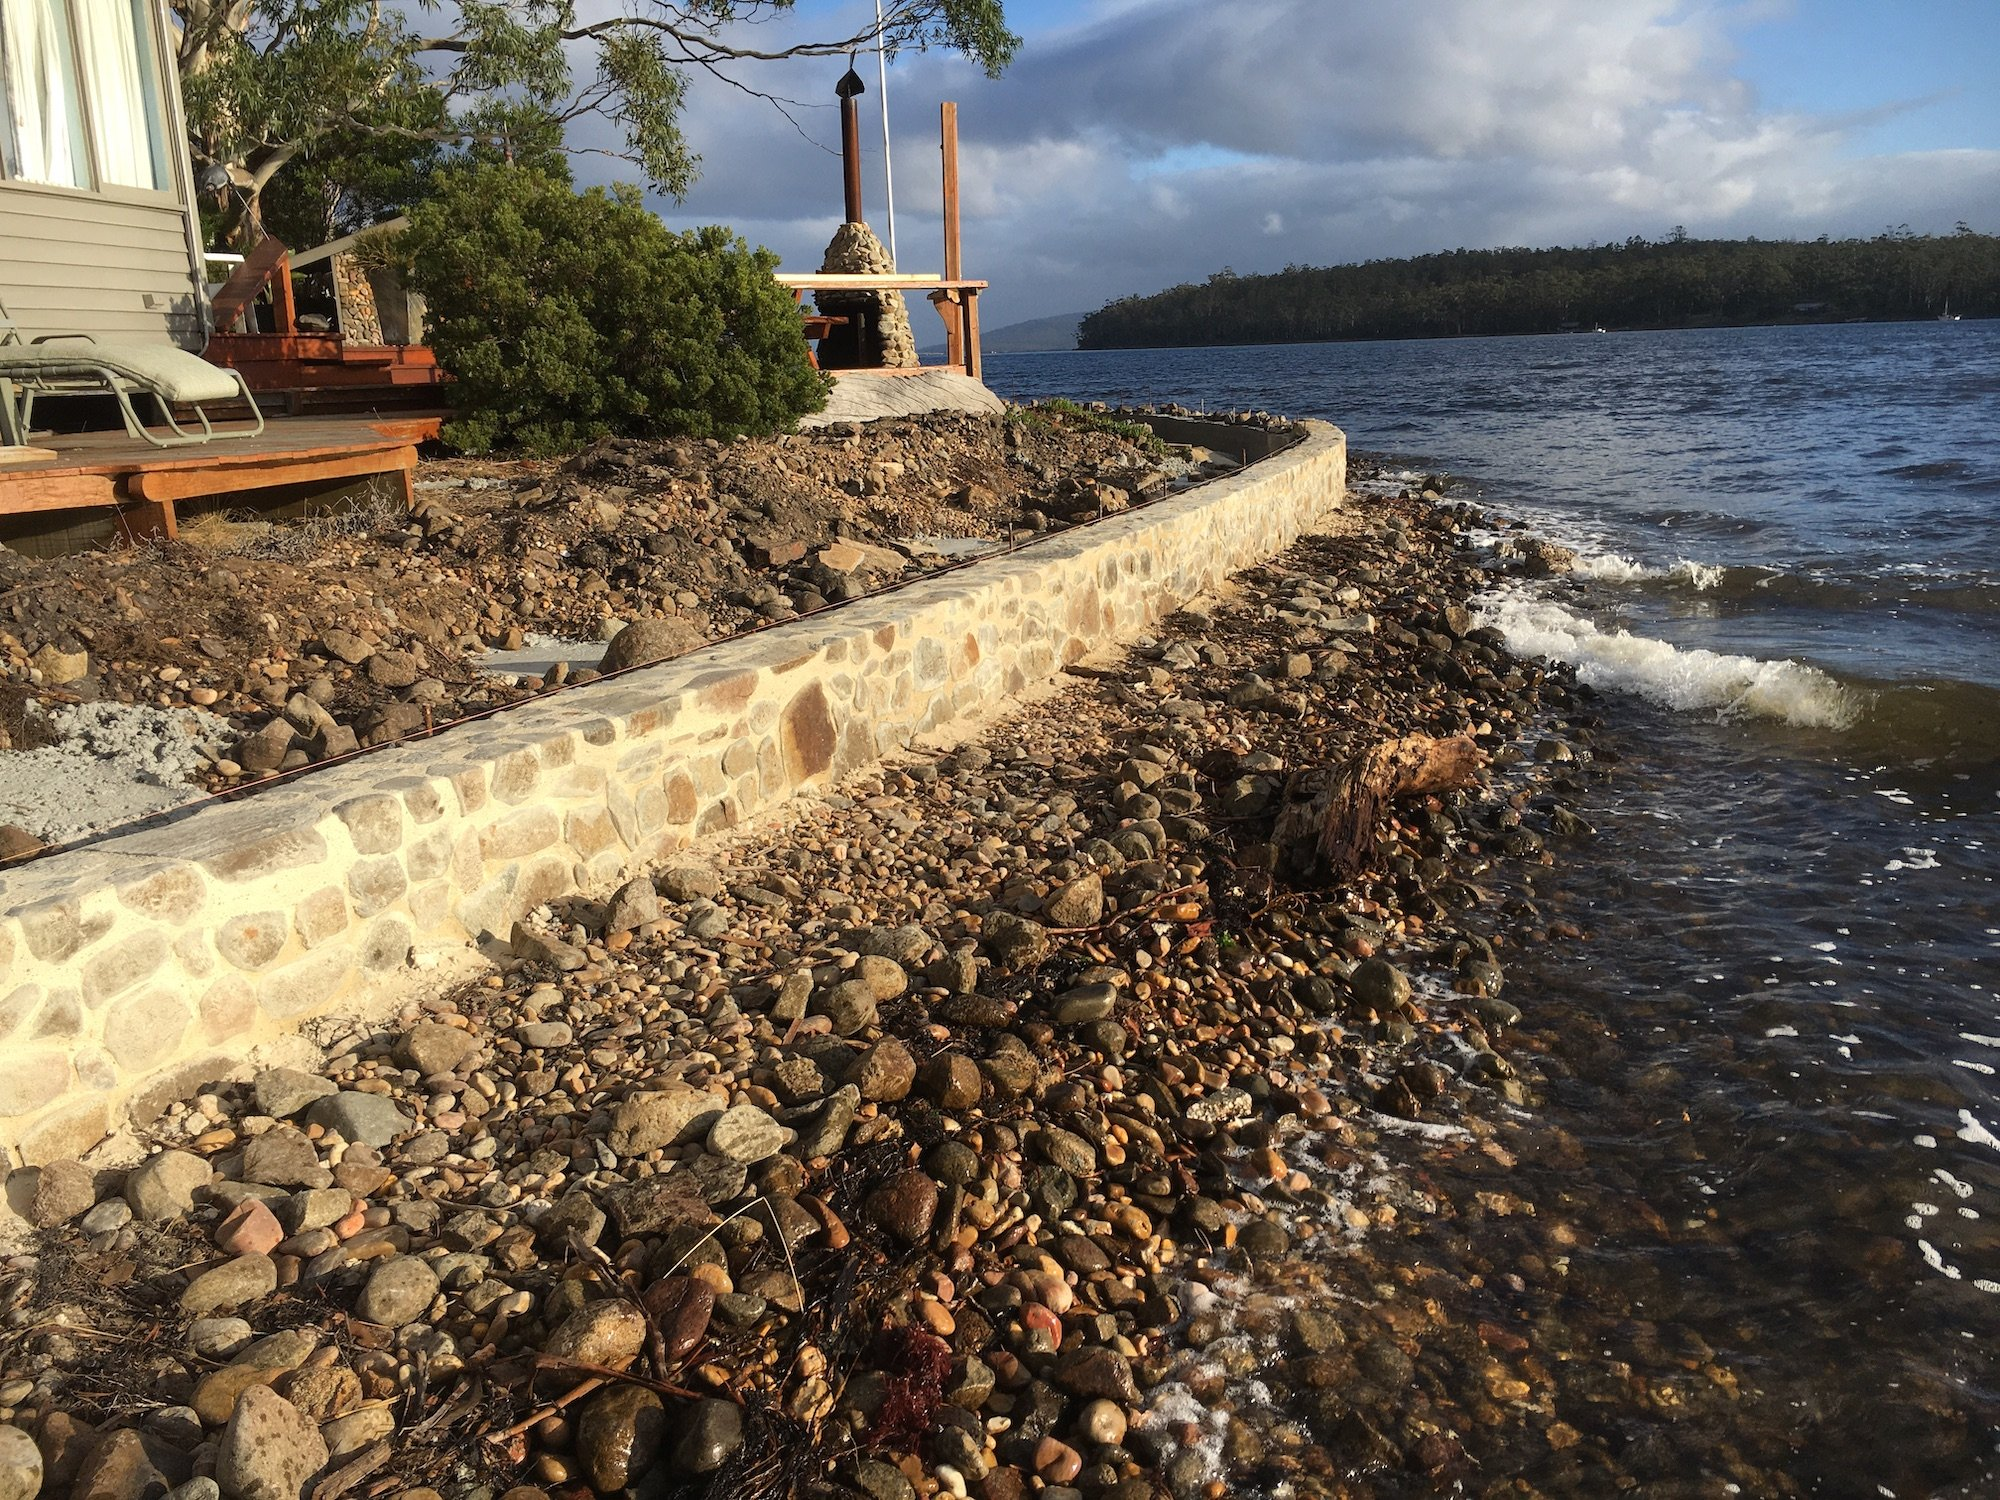 A reinstated sea wall, with pizza oven, outdoor and vegetation, with the backdrop of the Huon River.